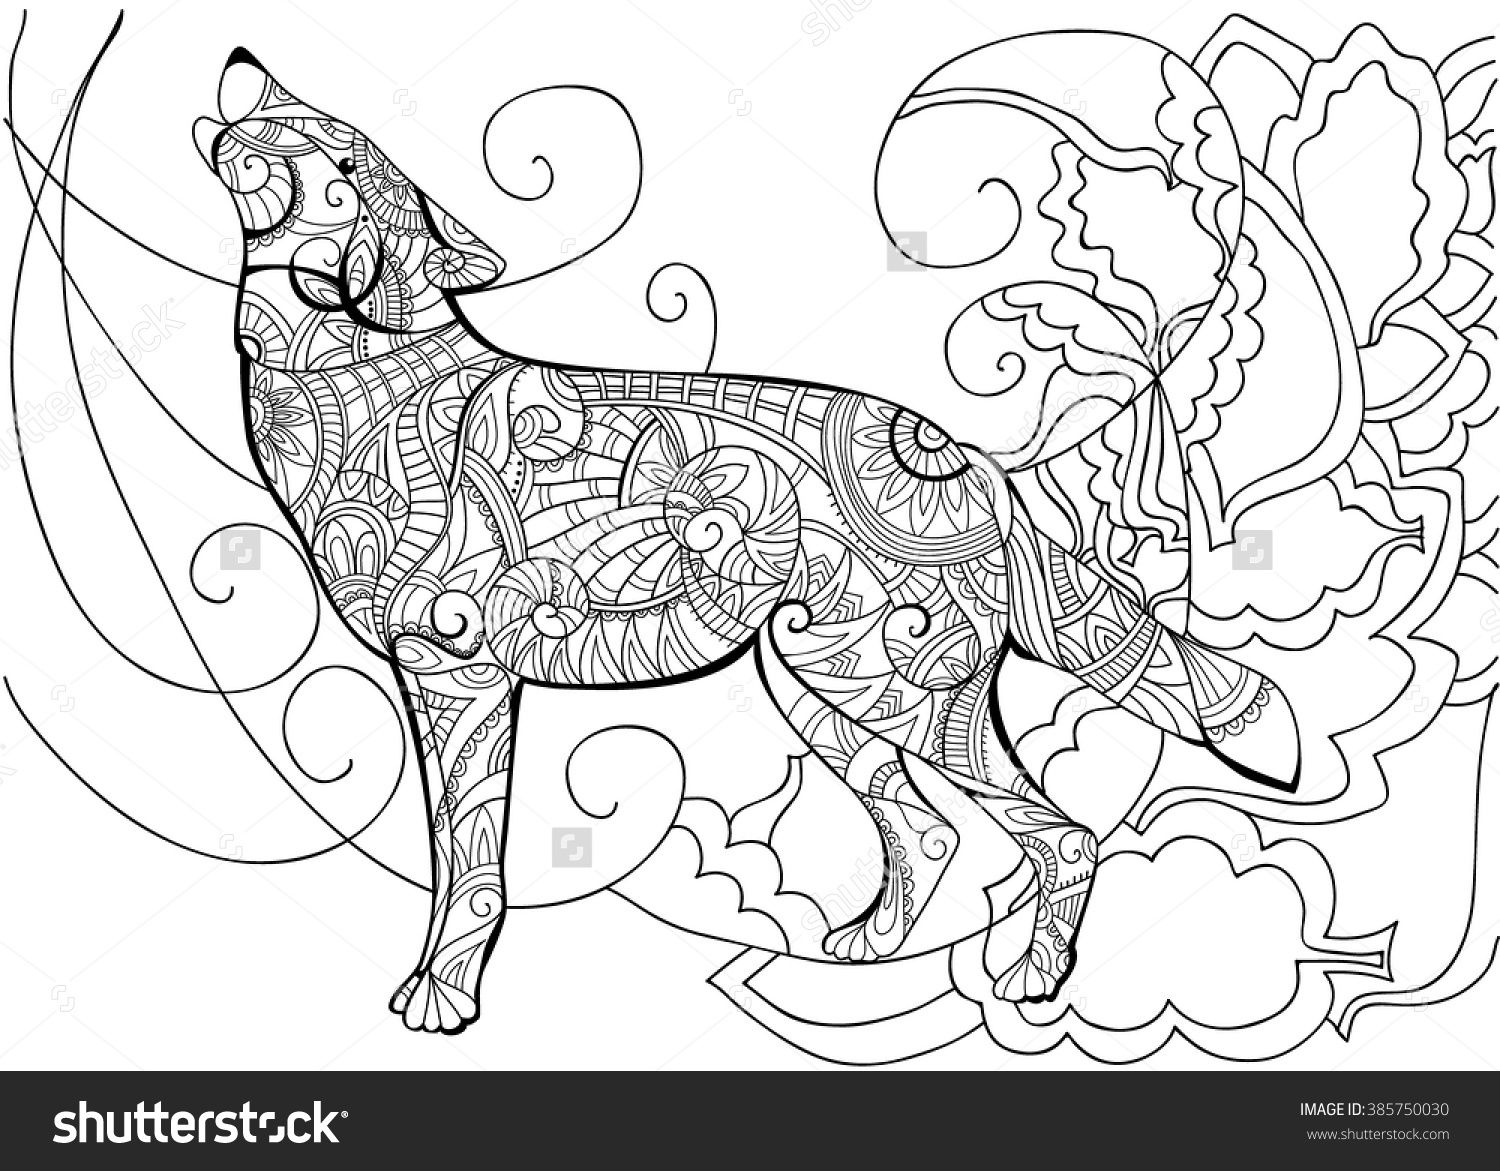 Coloring adults stress - Coloring For Adults Lace Patterns Vector Illustrations Coloring Books Body Art A Wolf Anti Stress White Lace Black And White